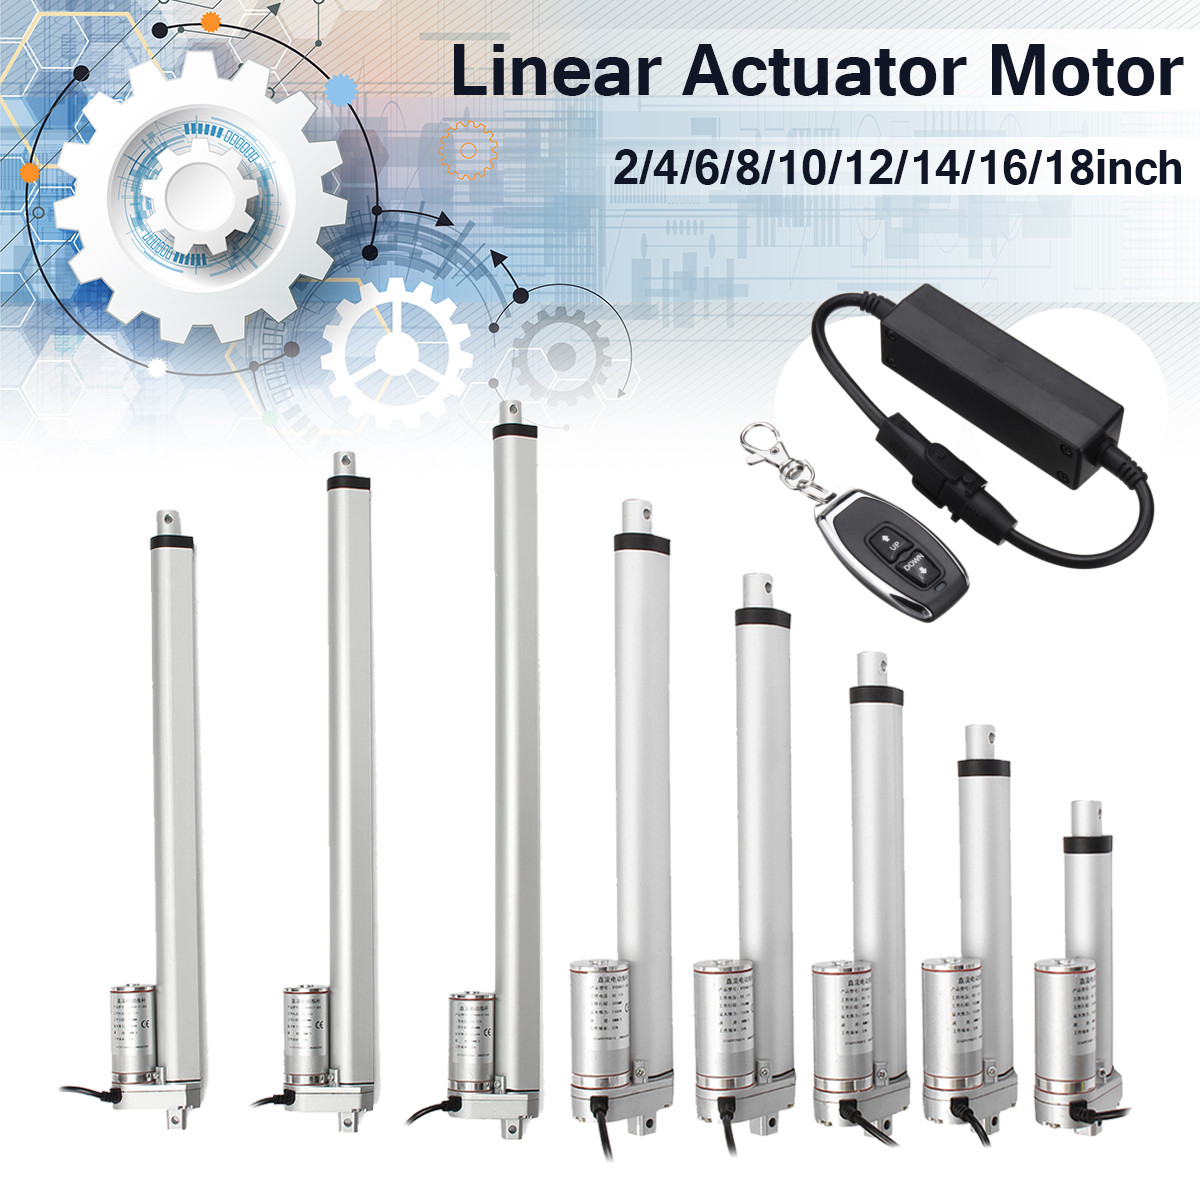 Wolike DC 12V Electric Motor Linear Actuator 150KG 1500N 4 18 Inch 330lbs For lectric Self Unicycle Scooter Input Voltage Range